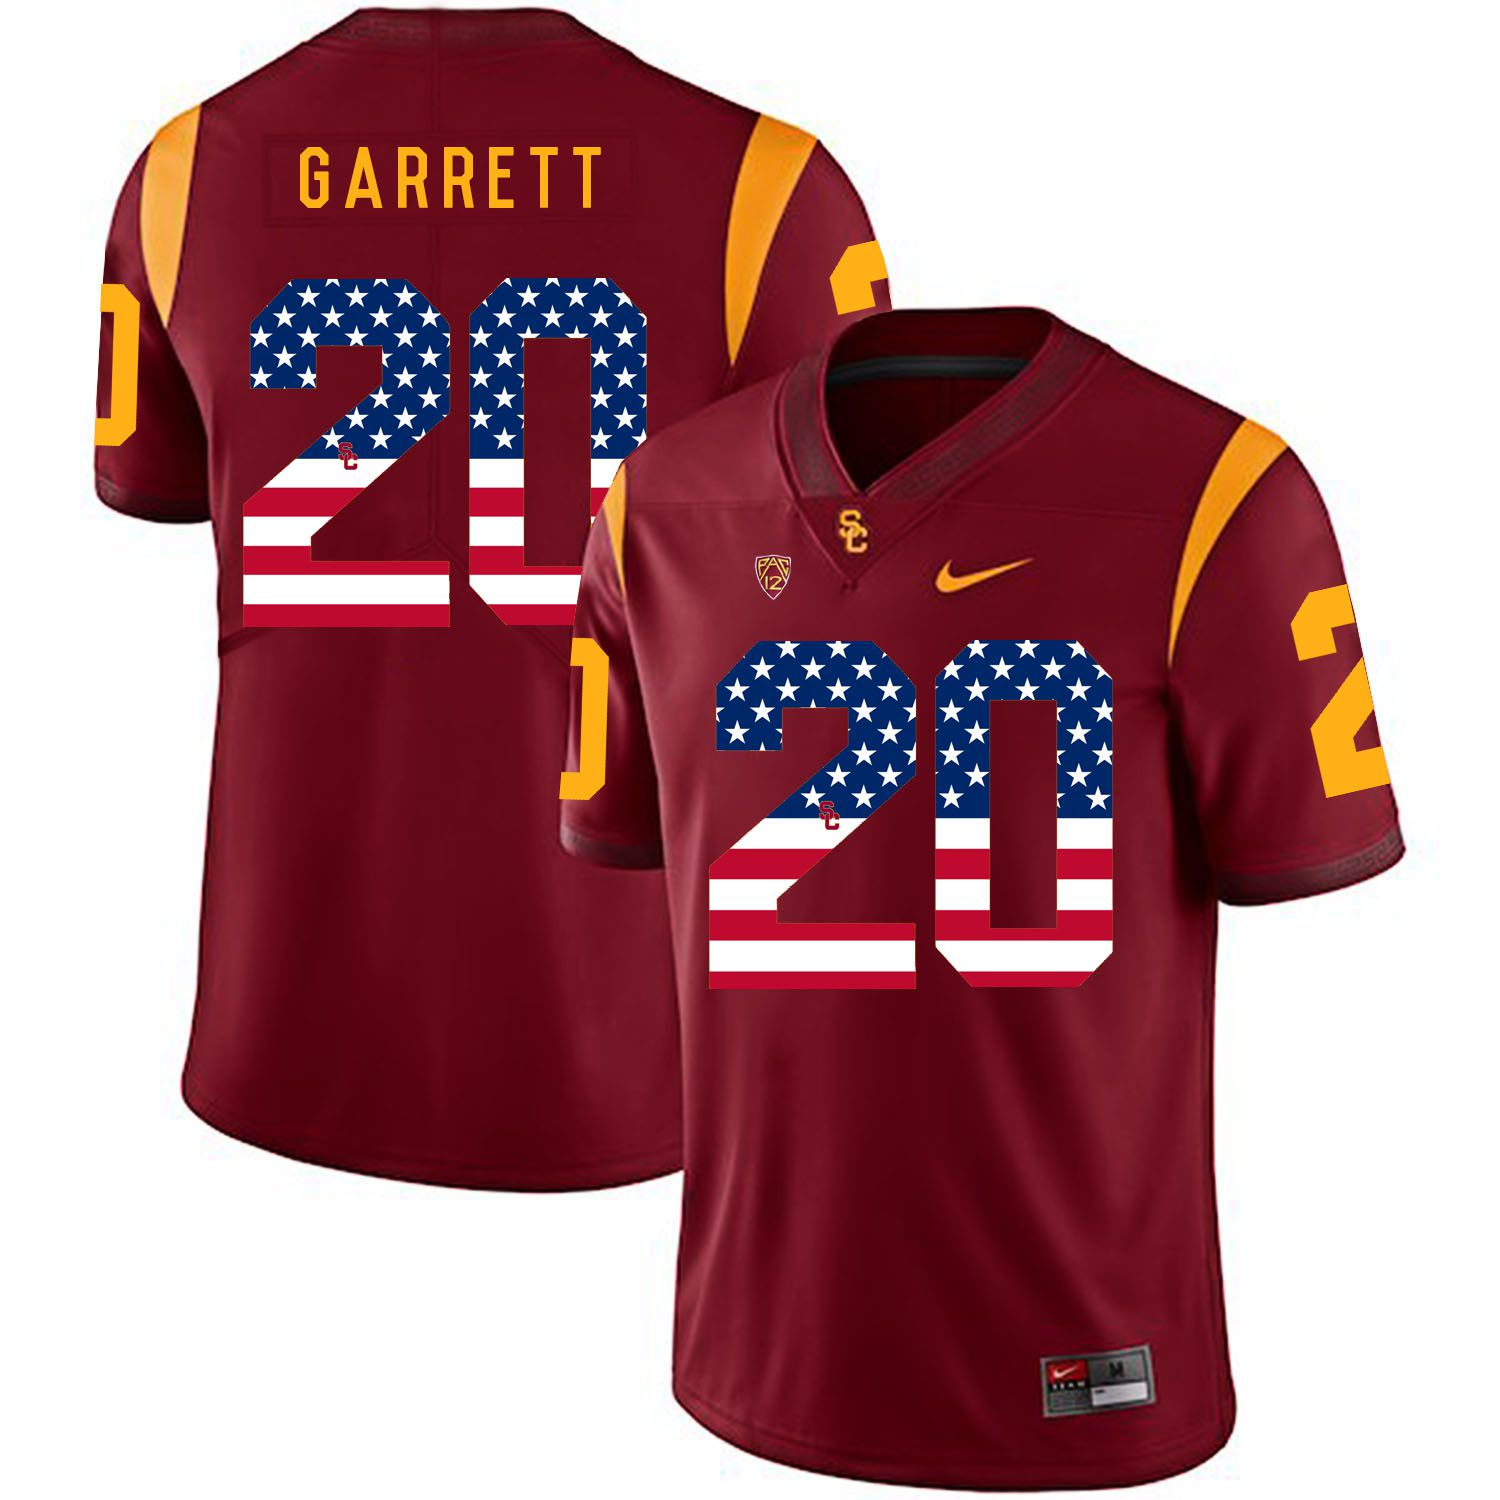 Men USC Trojans 20 Garrett Red Flag Customized NCAA Jerseys